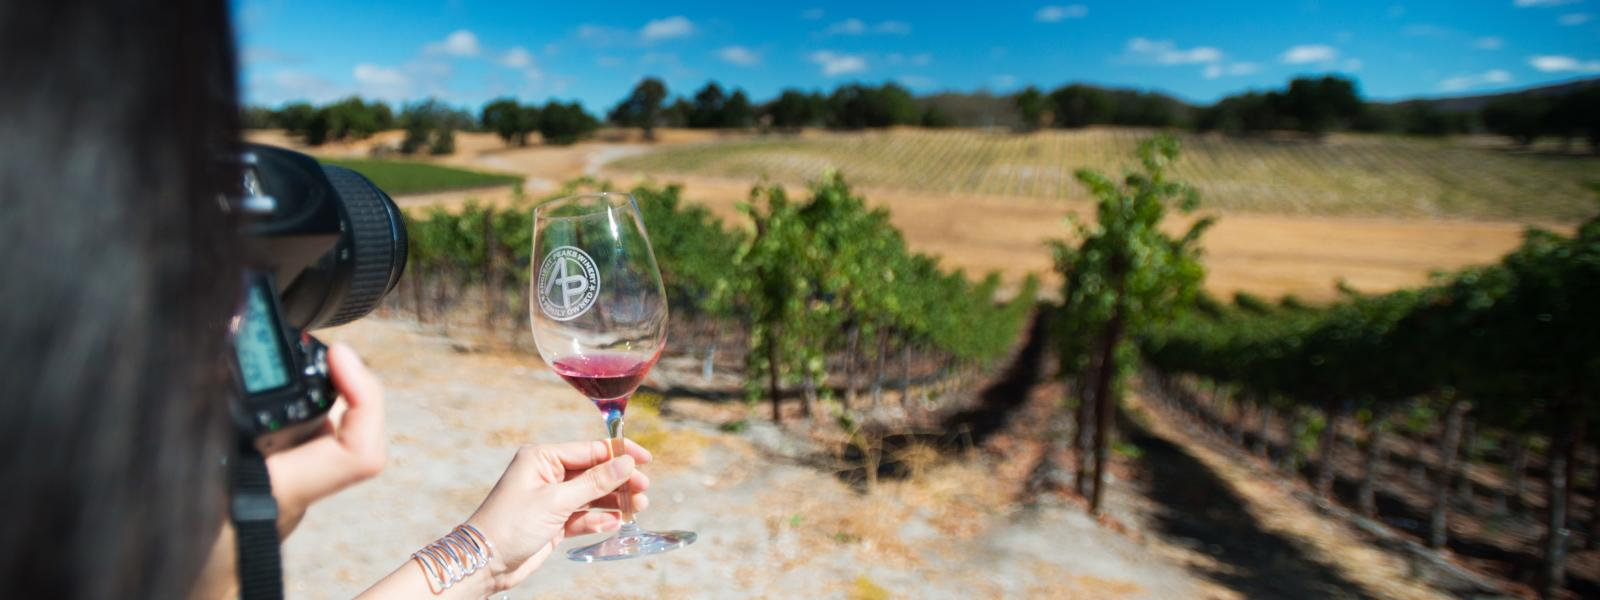 A photographer taking photos of a wine glass overlooking a SLO Cal Vineyard